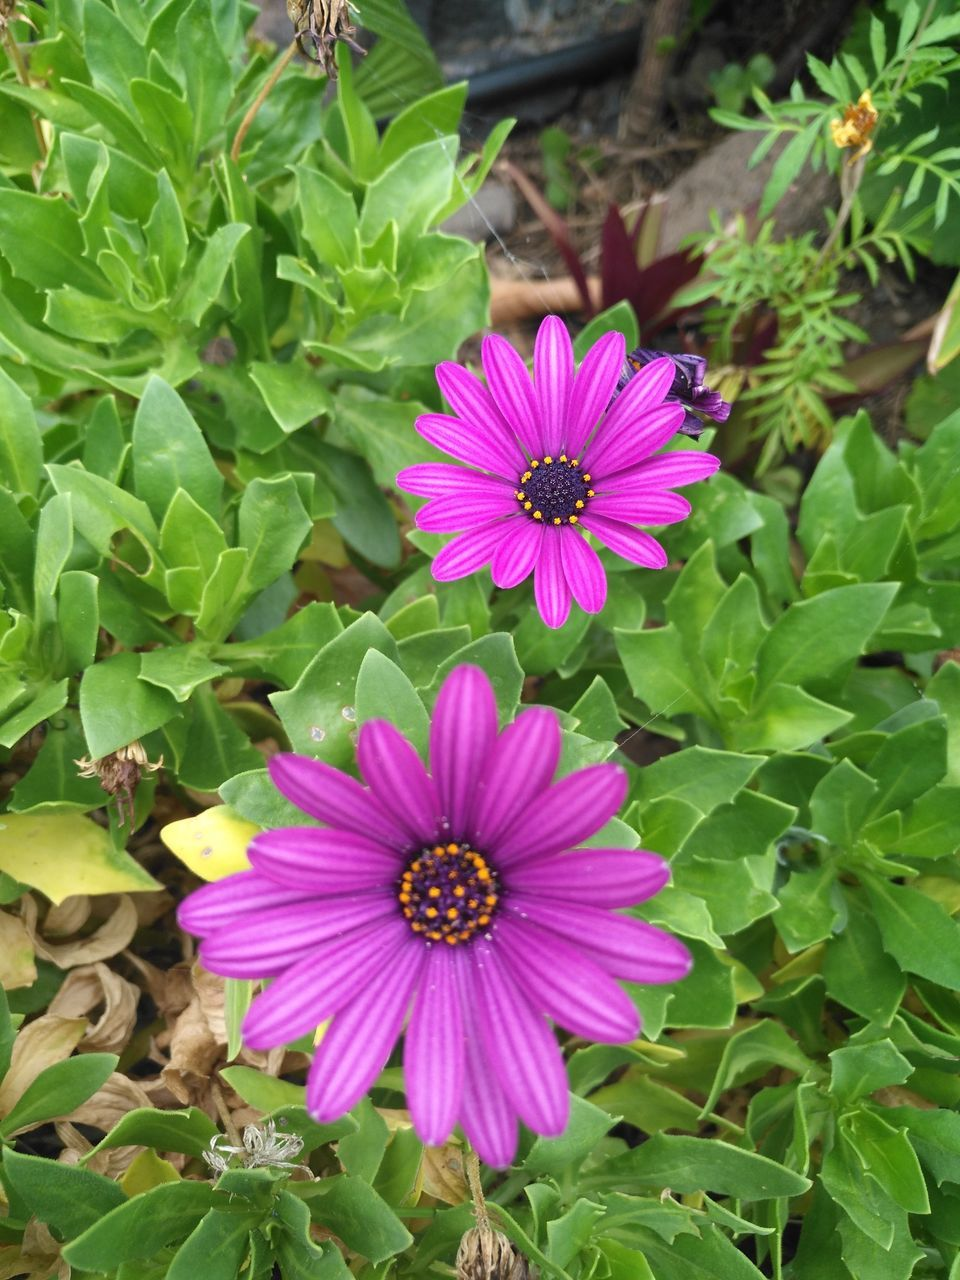 flower, growth, plant, petal, fragility, beauty in nature, nature, blooming, leaf, flower head, freshness, green color, day, outdoors, pink color, high angle view, purple, osteospermum, no people, close-up, petunia, eastern purple coneflower, zinnia, periwinkle